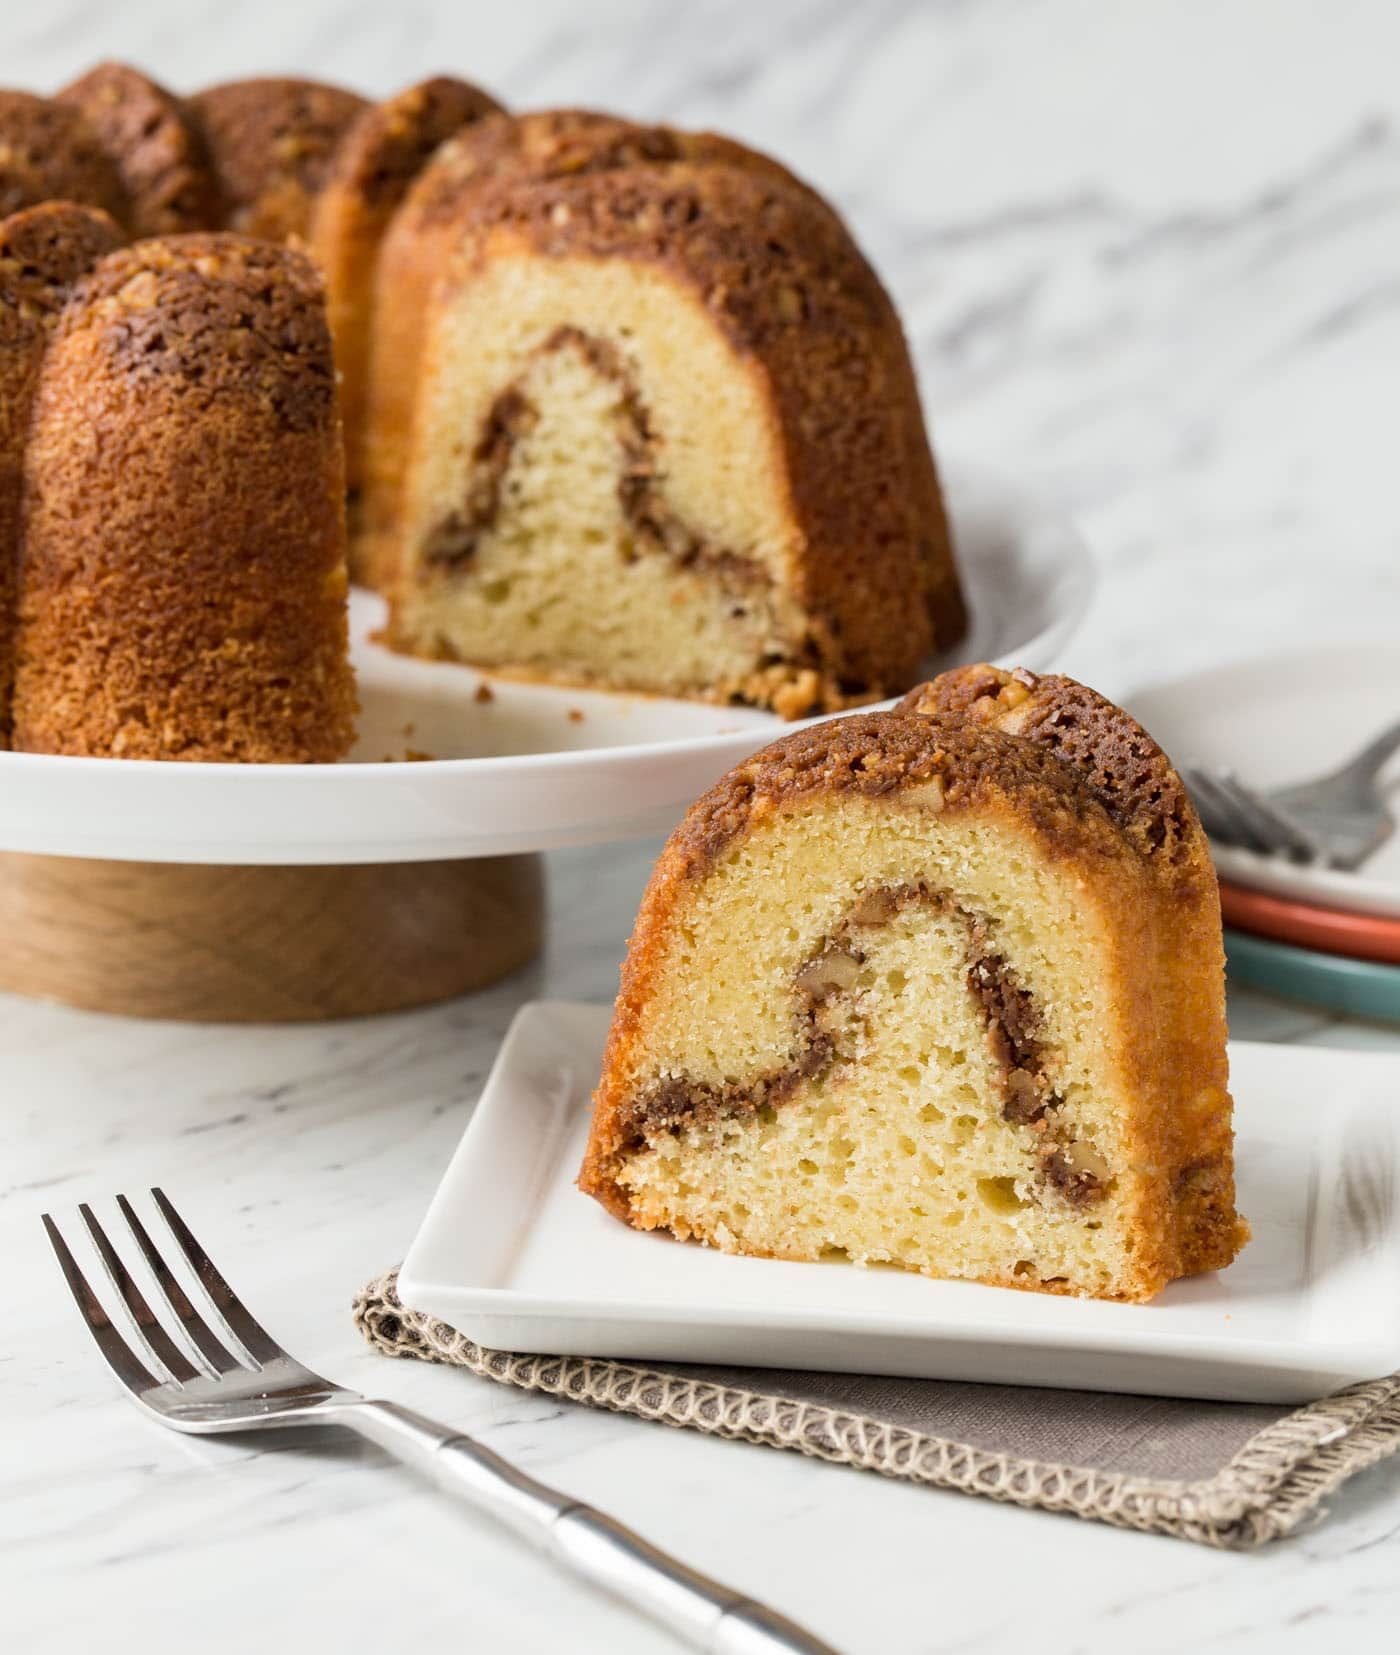 This traditional Sour Cream Coffee Cake recipe has a